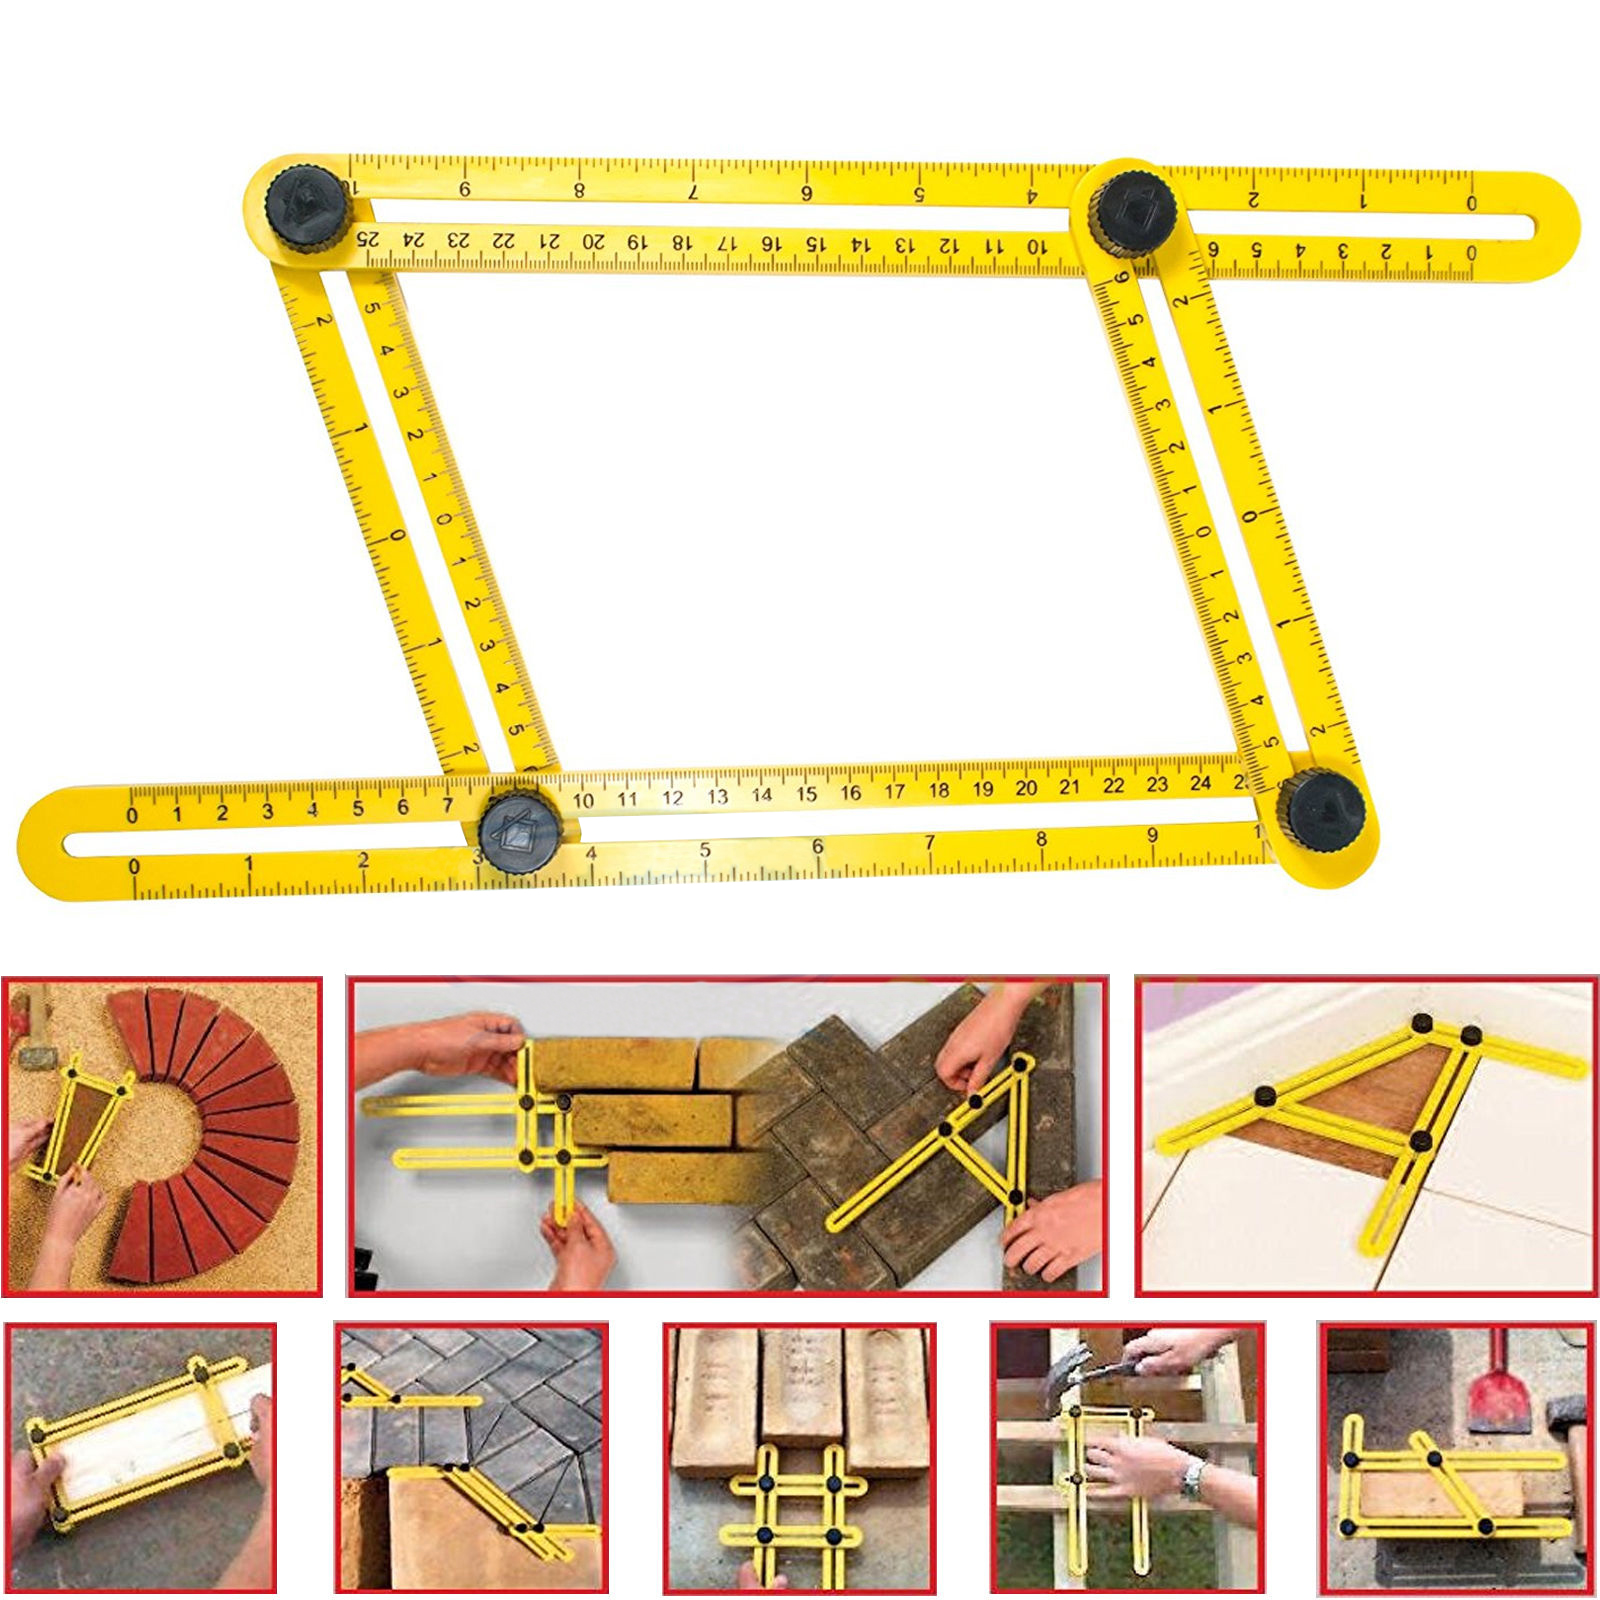 TSV Multi-Angle Measuring Ruler Ultimate Template Tools by